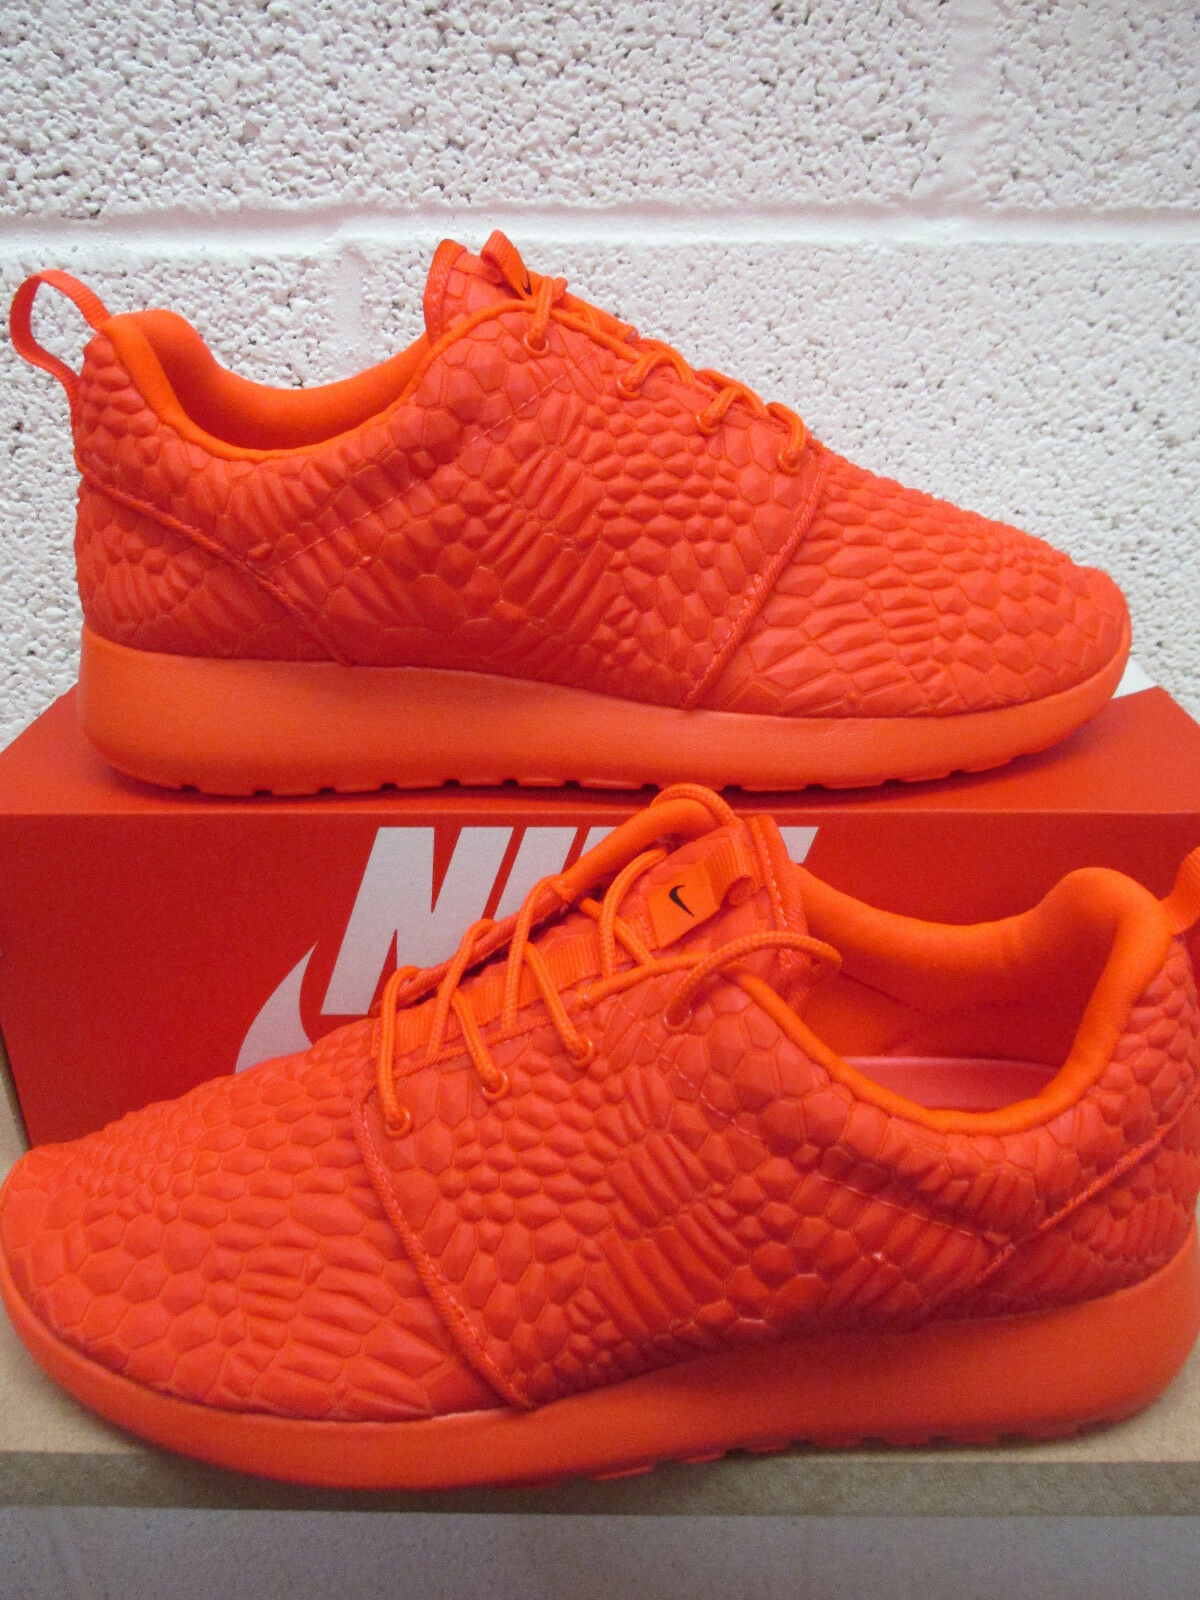 nike womens roshe one DMB running trainers 807460 600 sneakers shoes